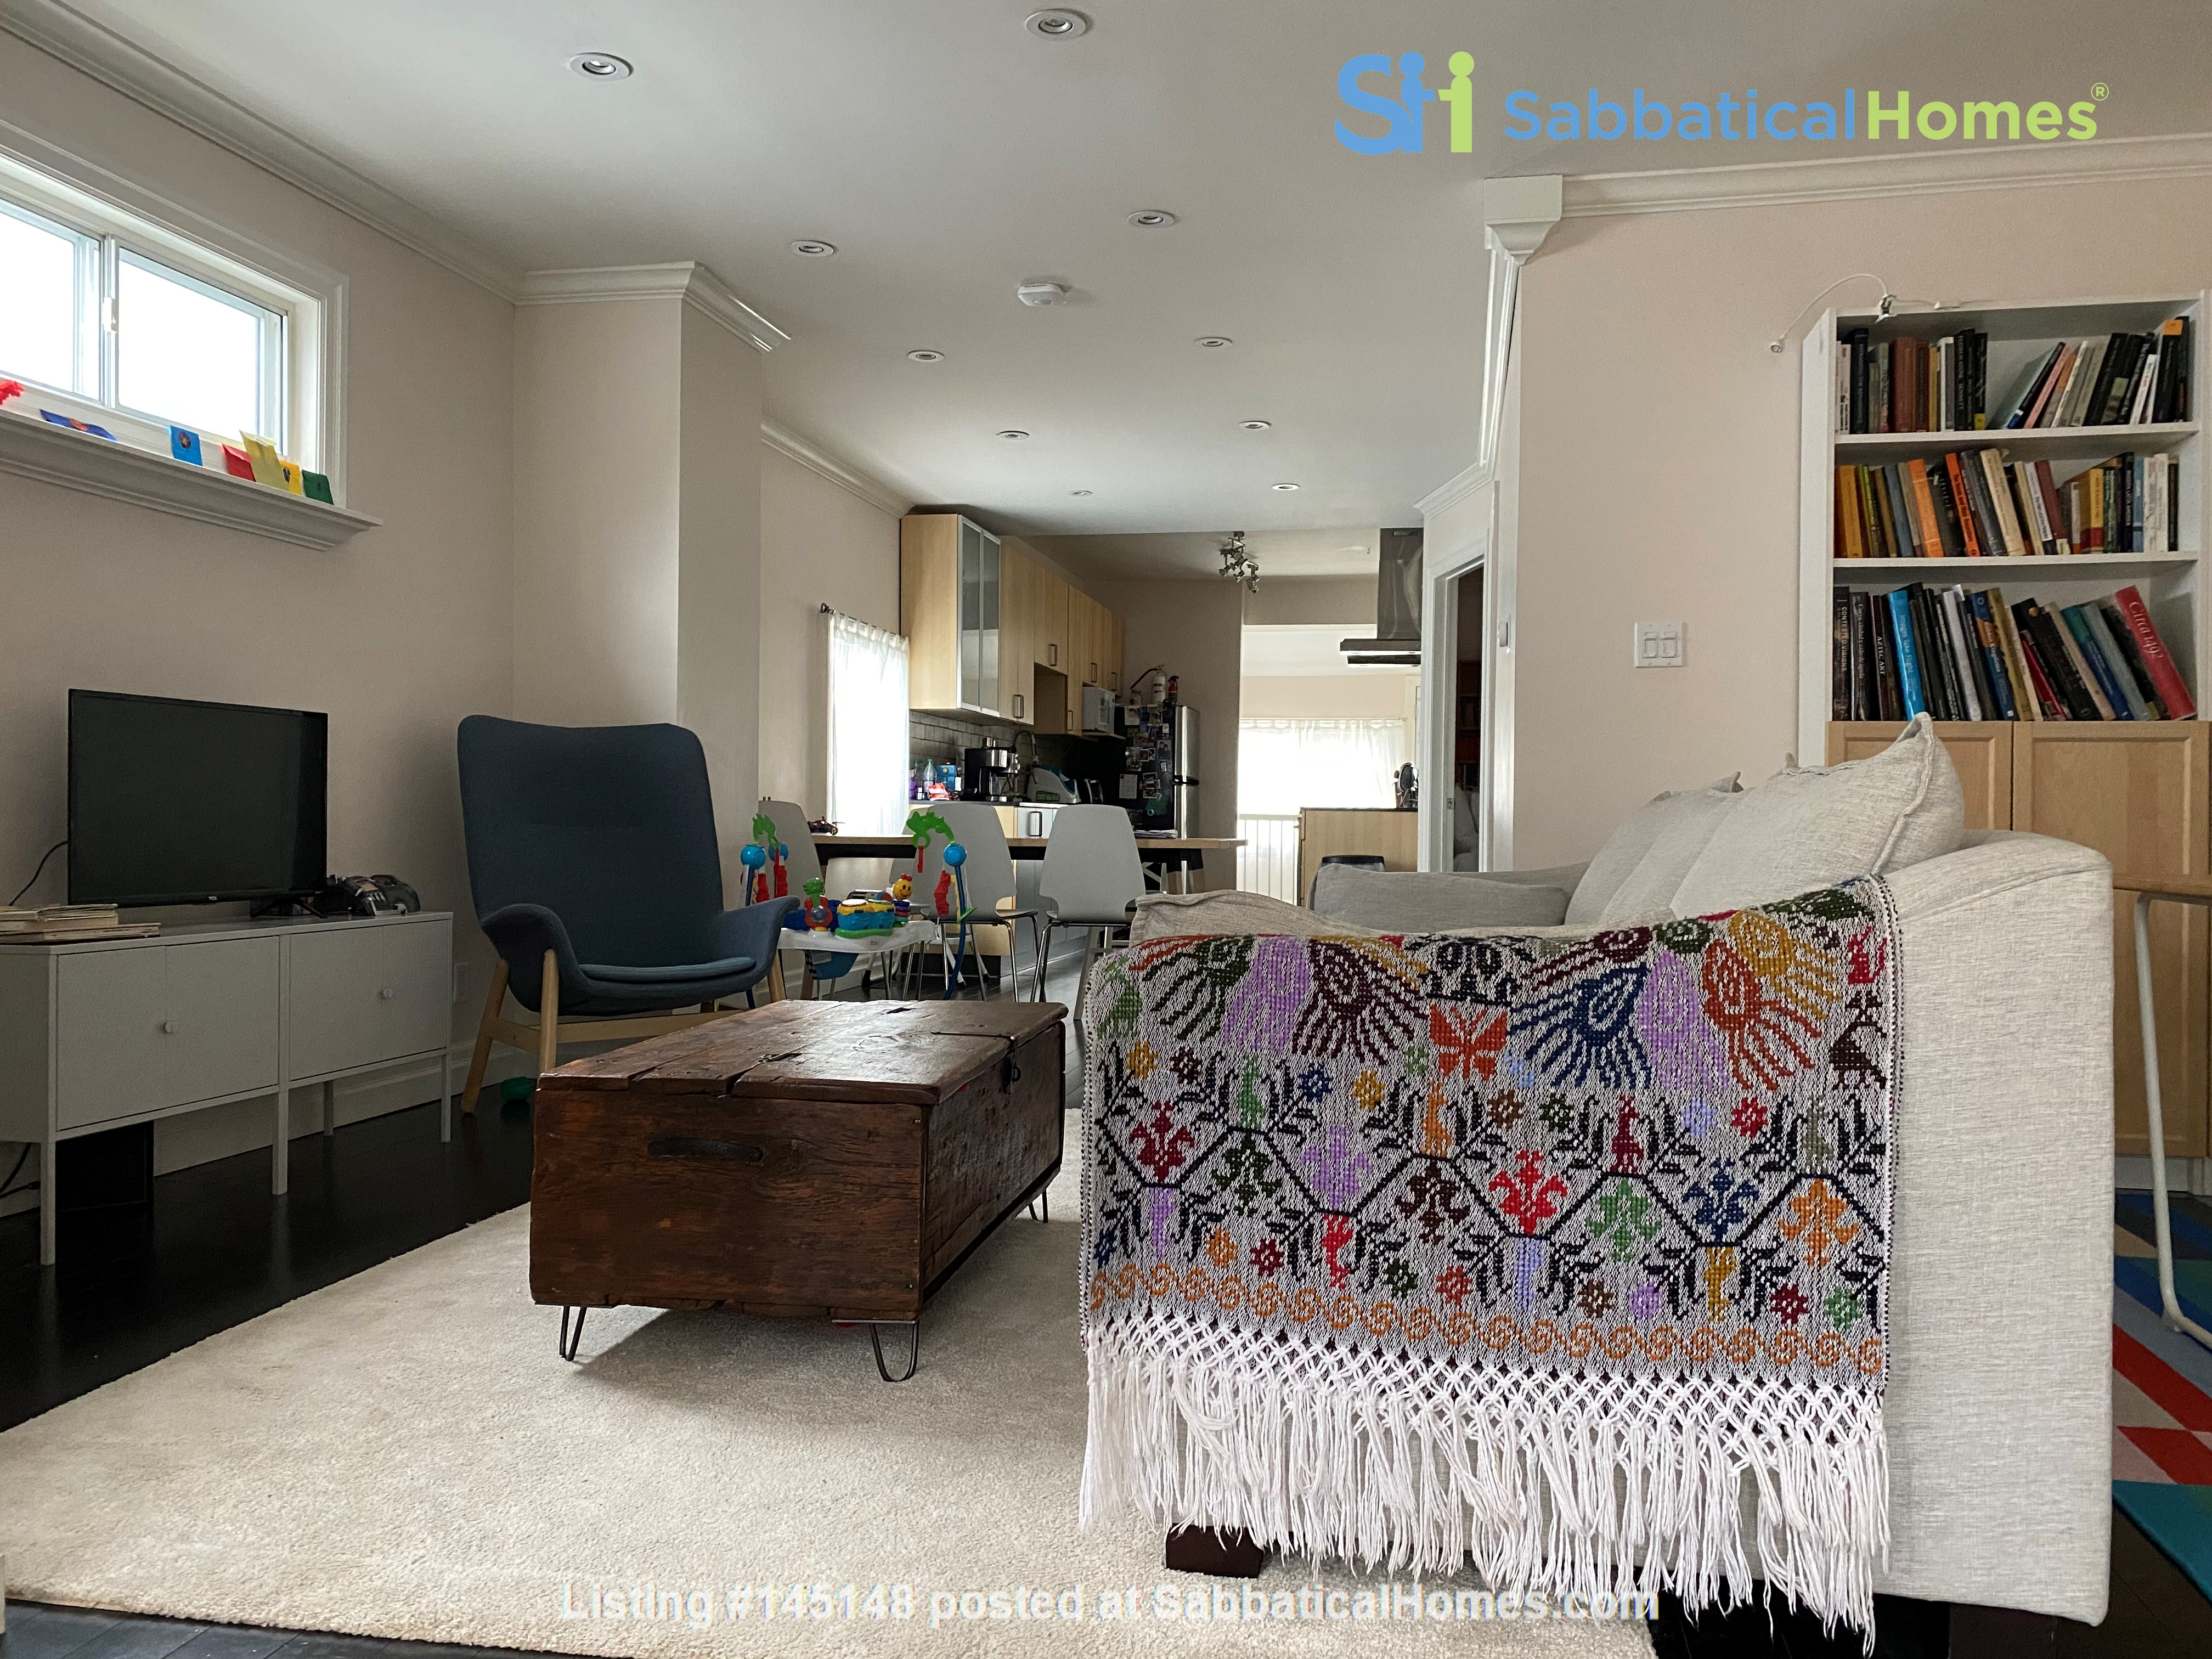 2-BR Renovated Bungalow: Perfect for a family with young kids! Home Rental in Toronto, Ontario, Canada 0